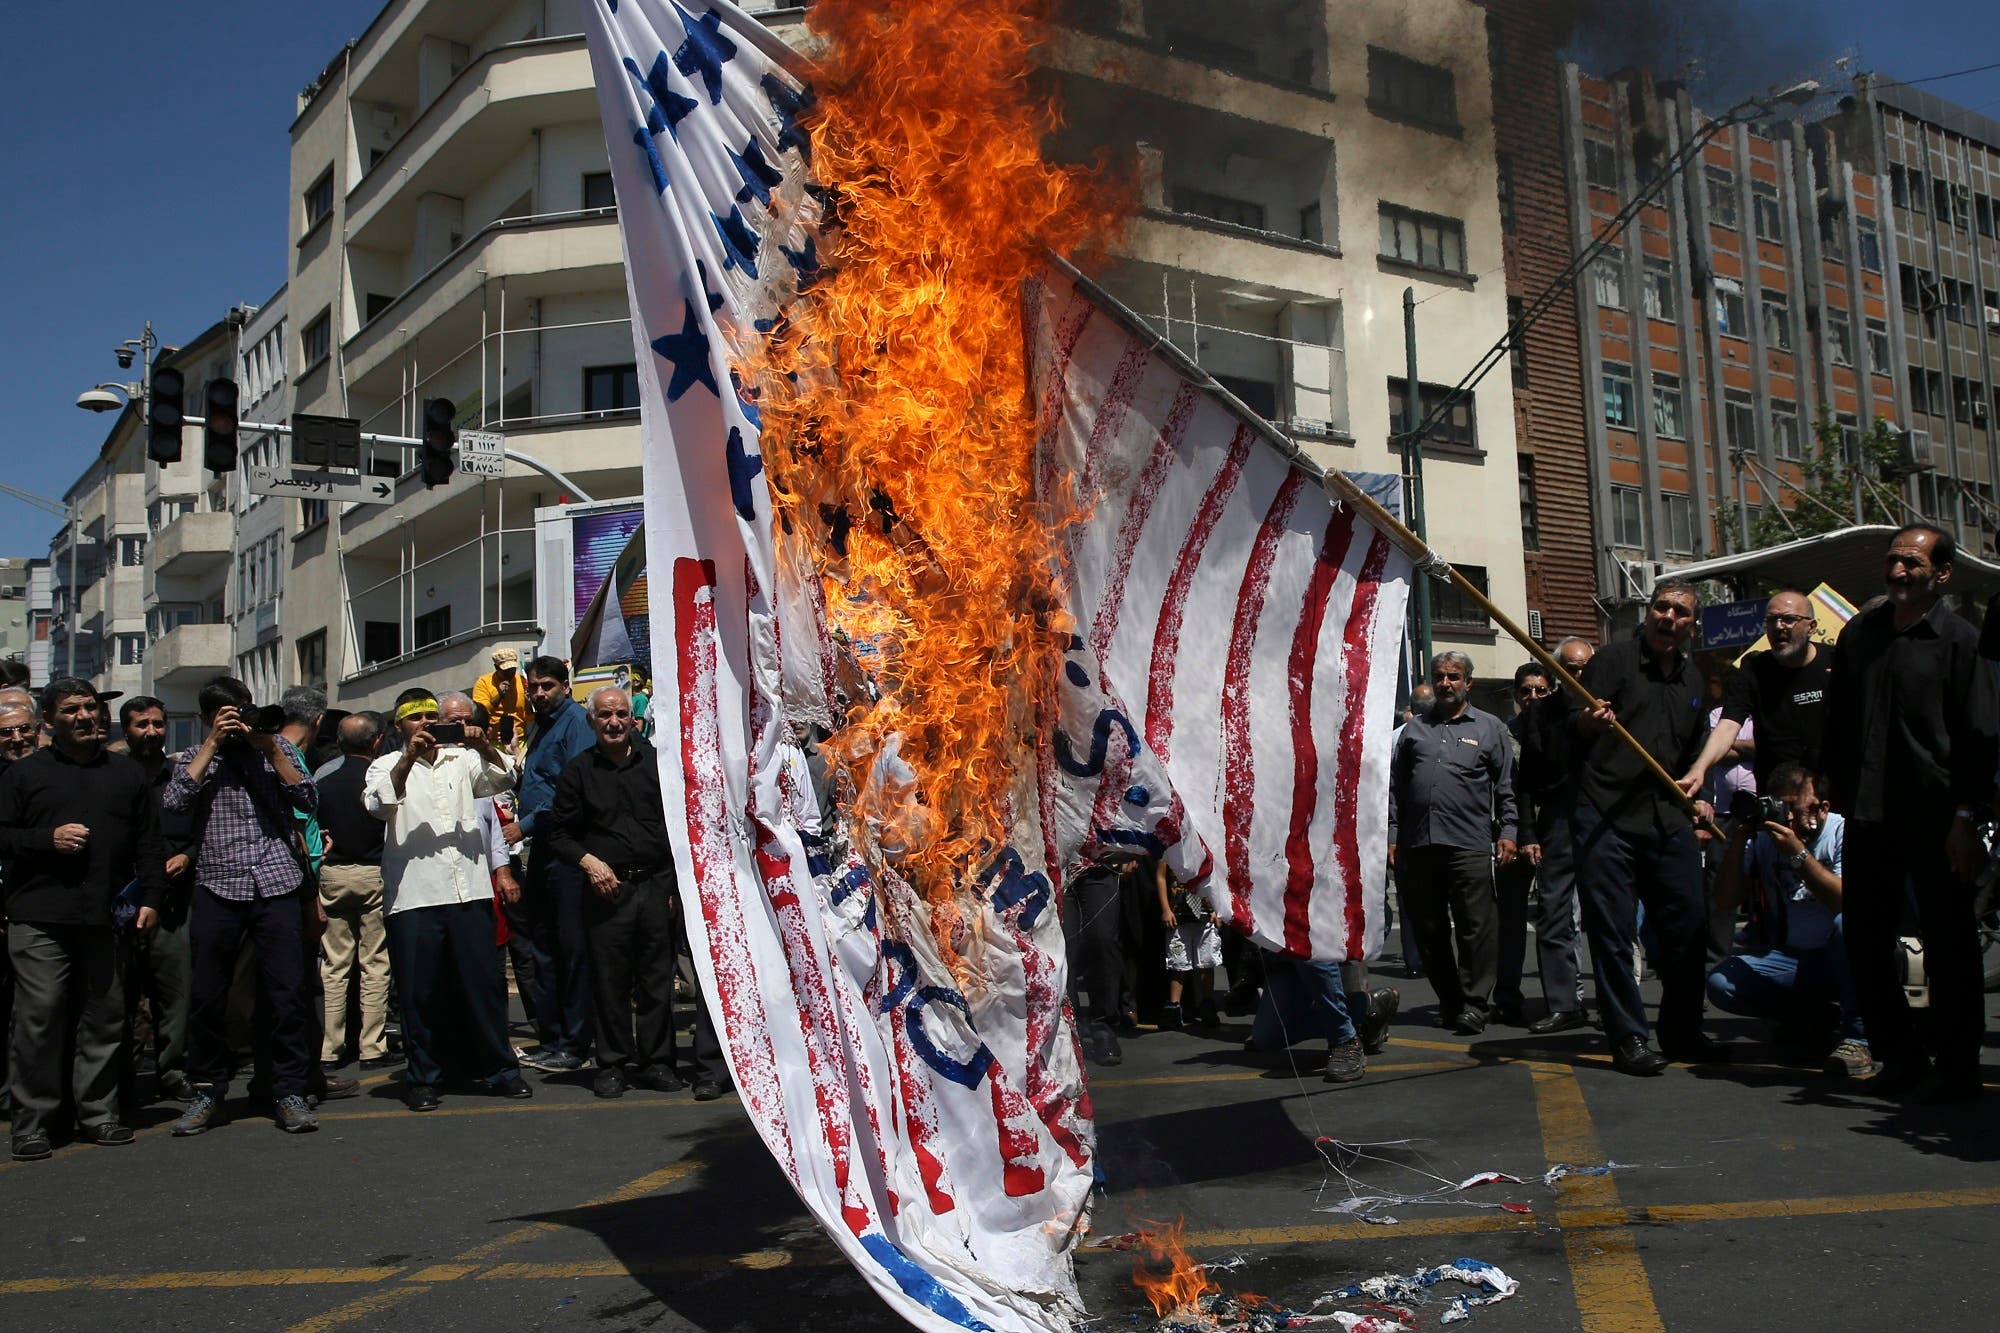 Iranian protesters burn a representation of the US flag at a rally in Tehran on June 8, 2018. (AP)